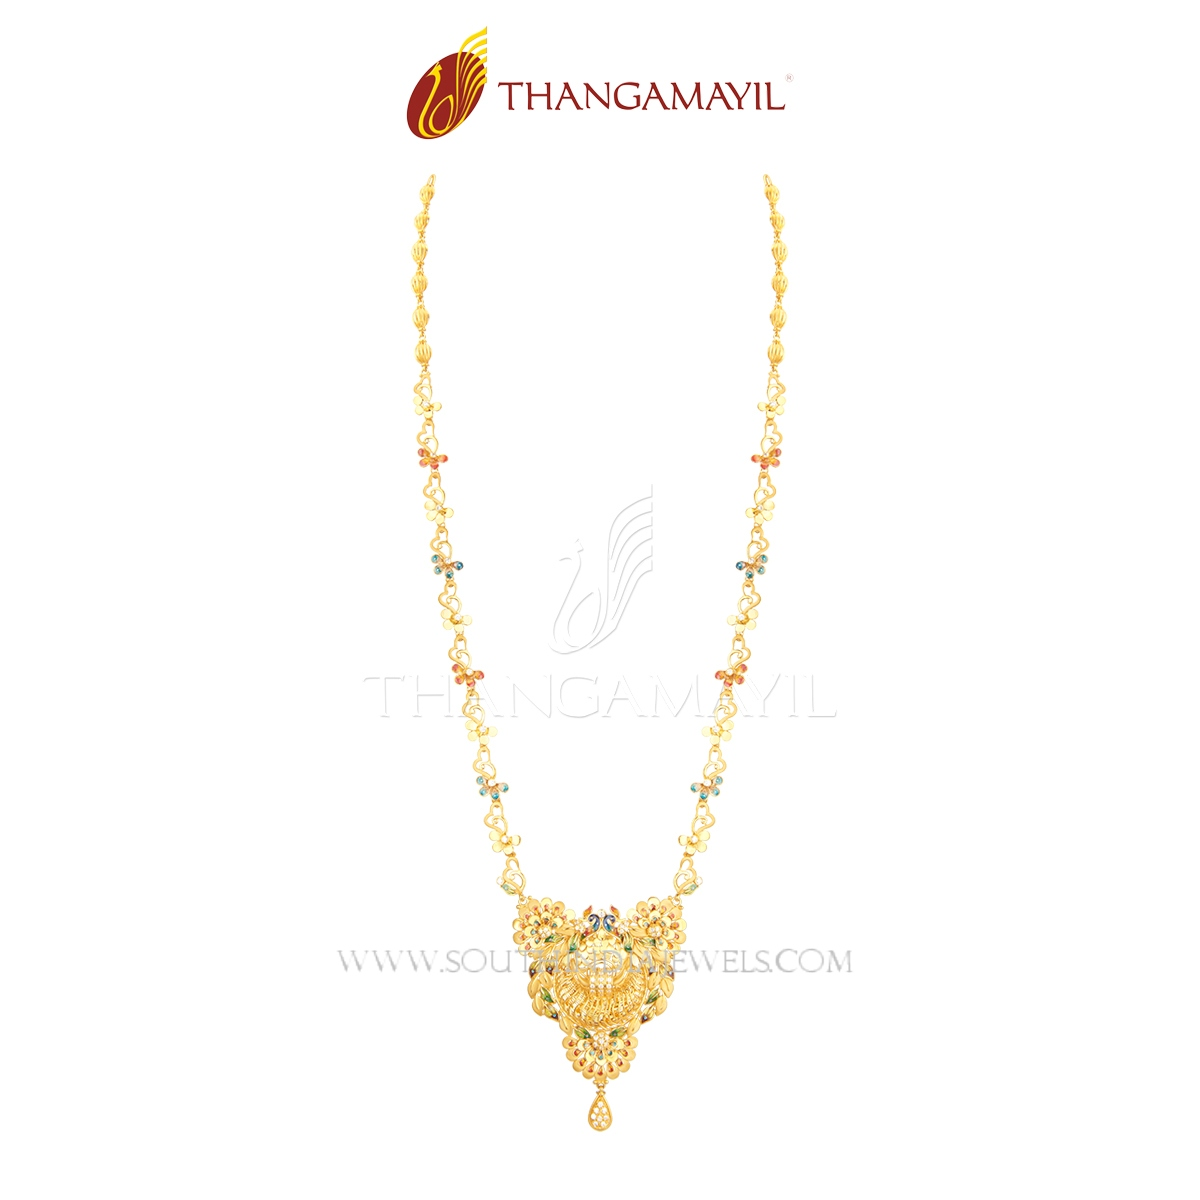 Light Weight Gold Peacock Haram From Thagamayil Jewellery